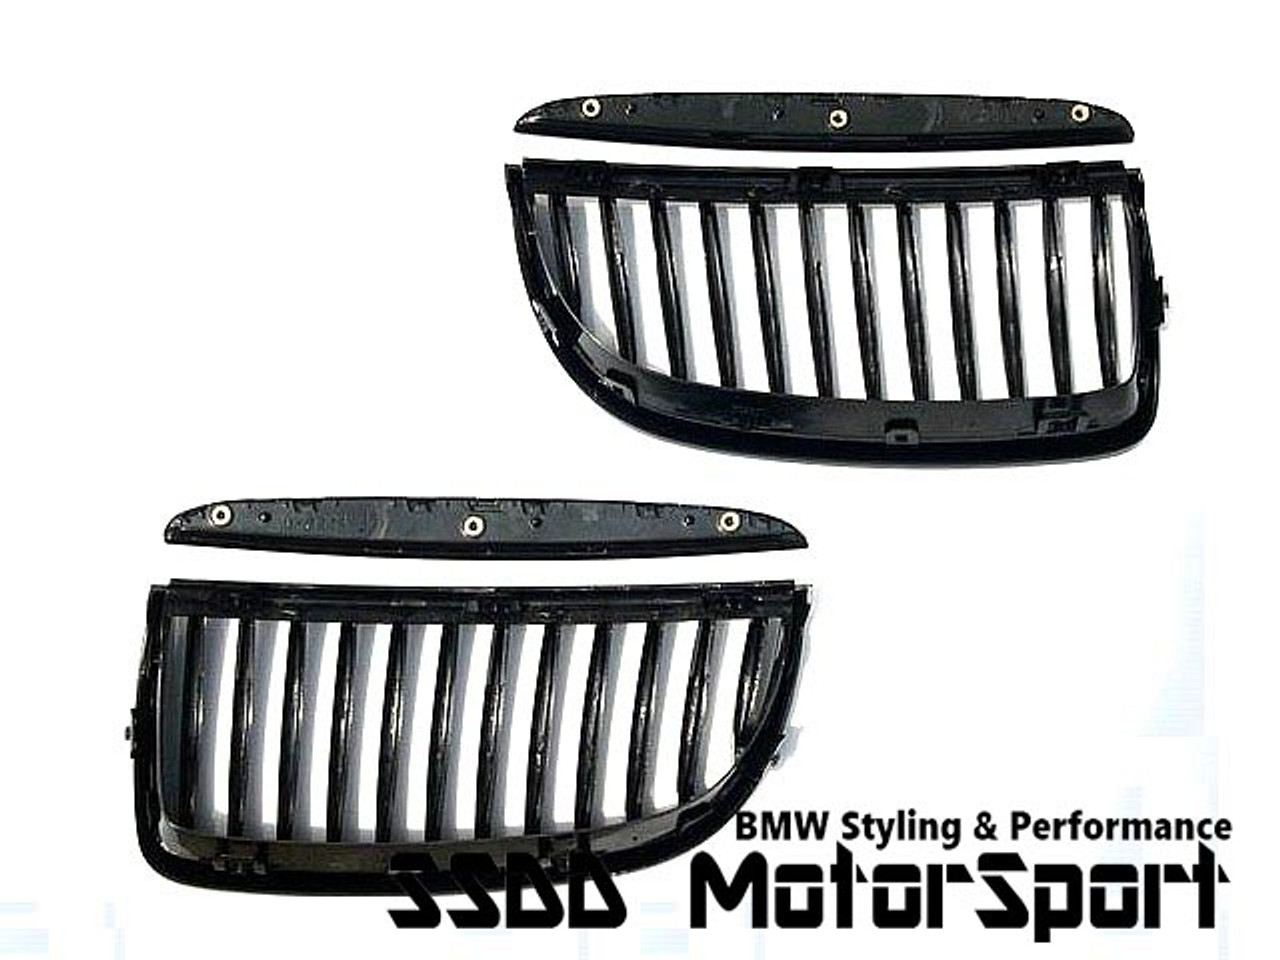 RENNESSIS High Gloss Black Kidney Grilles for BMW E90 E91